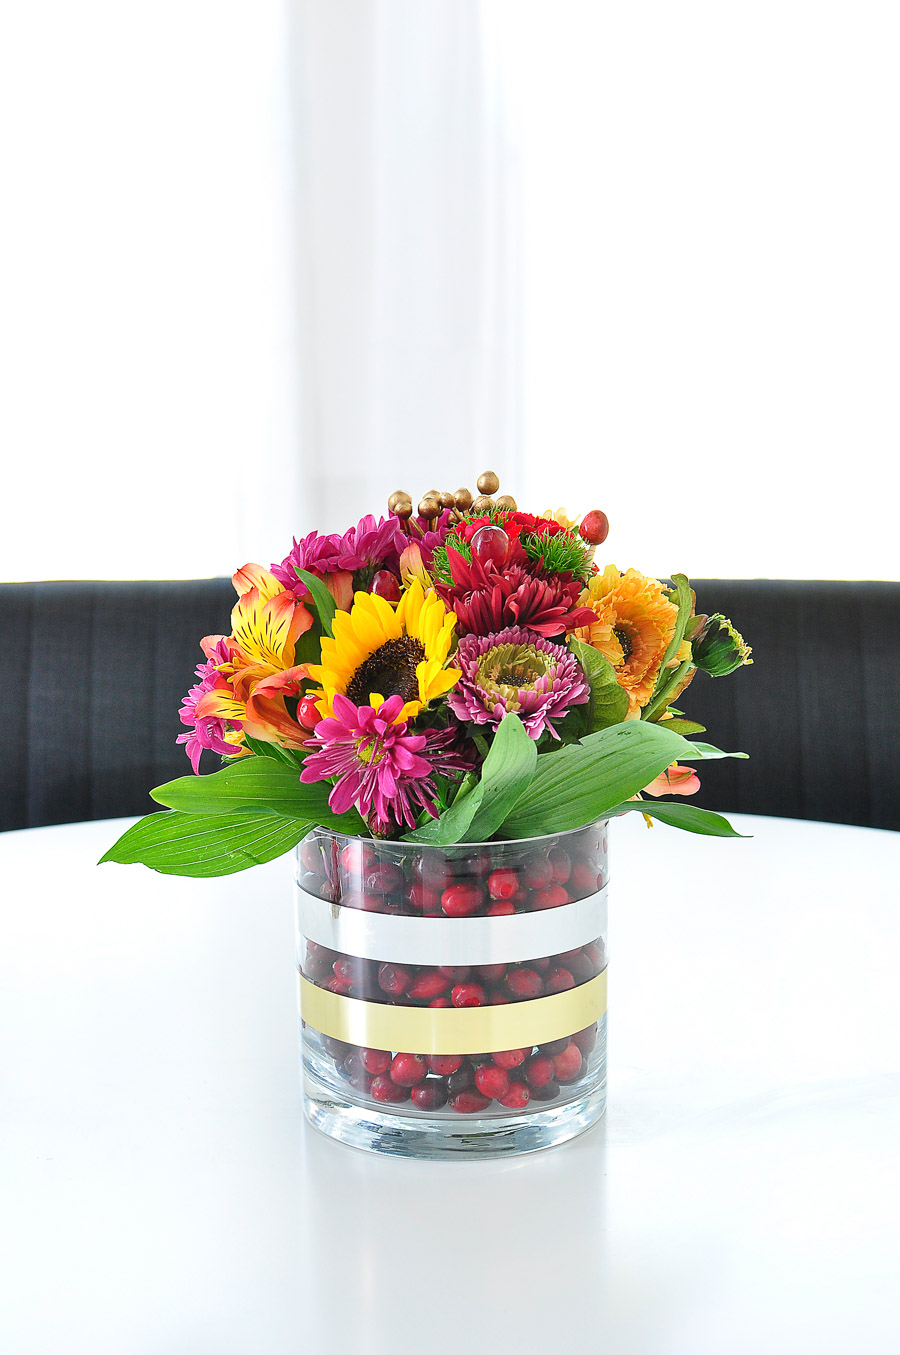 Cranberry vase with bold fall flowers for a centerpiece or tablescape decor. | #flowerarrangements #diningroom #flowerdesign #diningroomdecorideas #monicawantsit